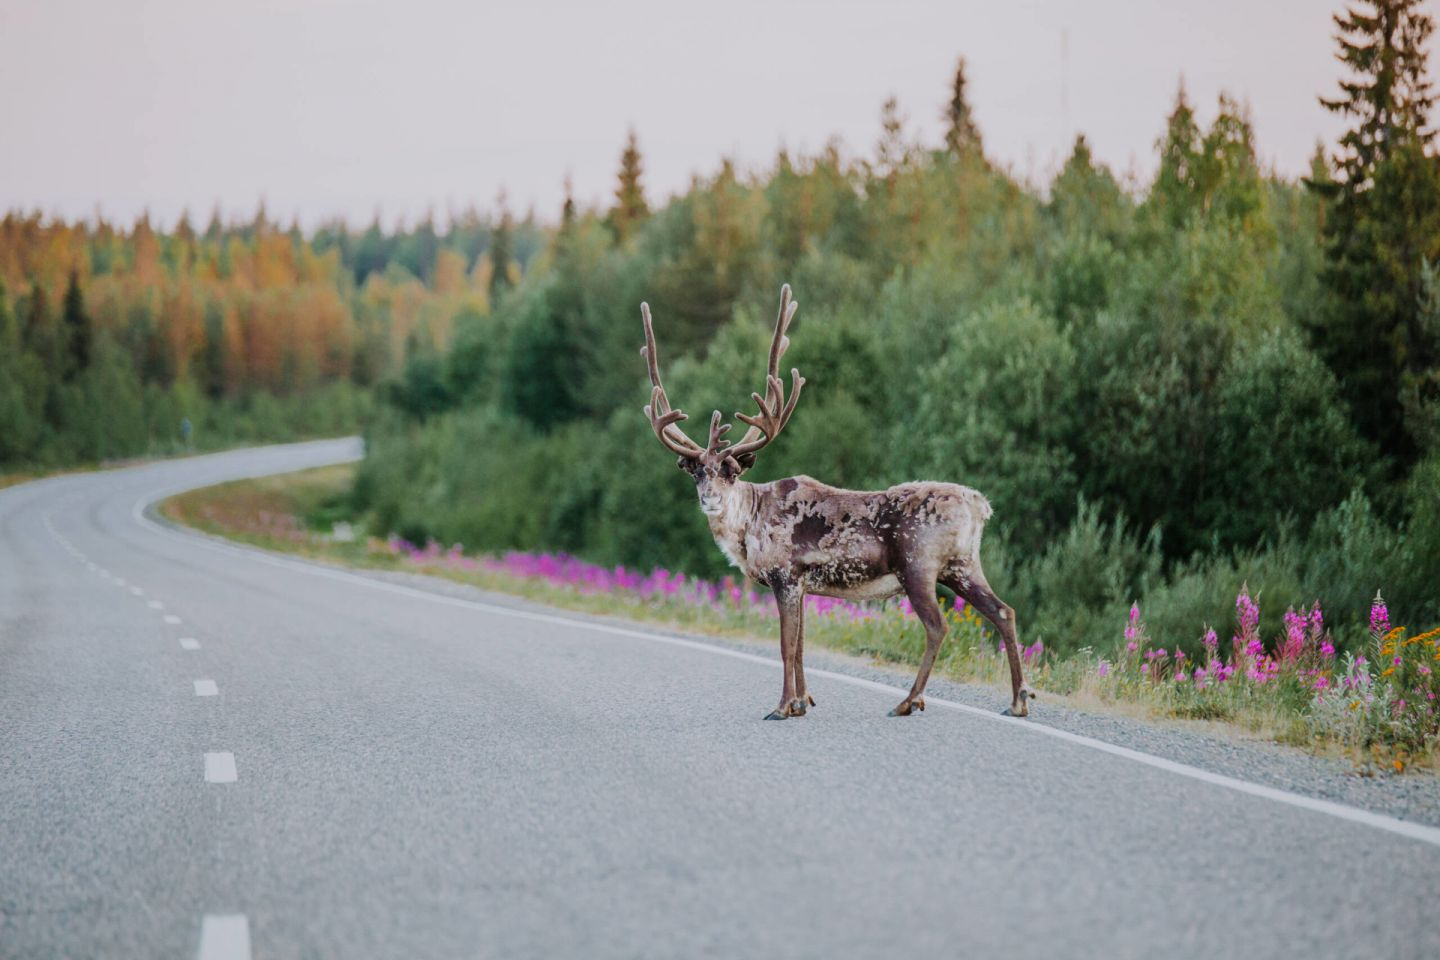 Reindeer on the road in Finnish Lapland